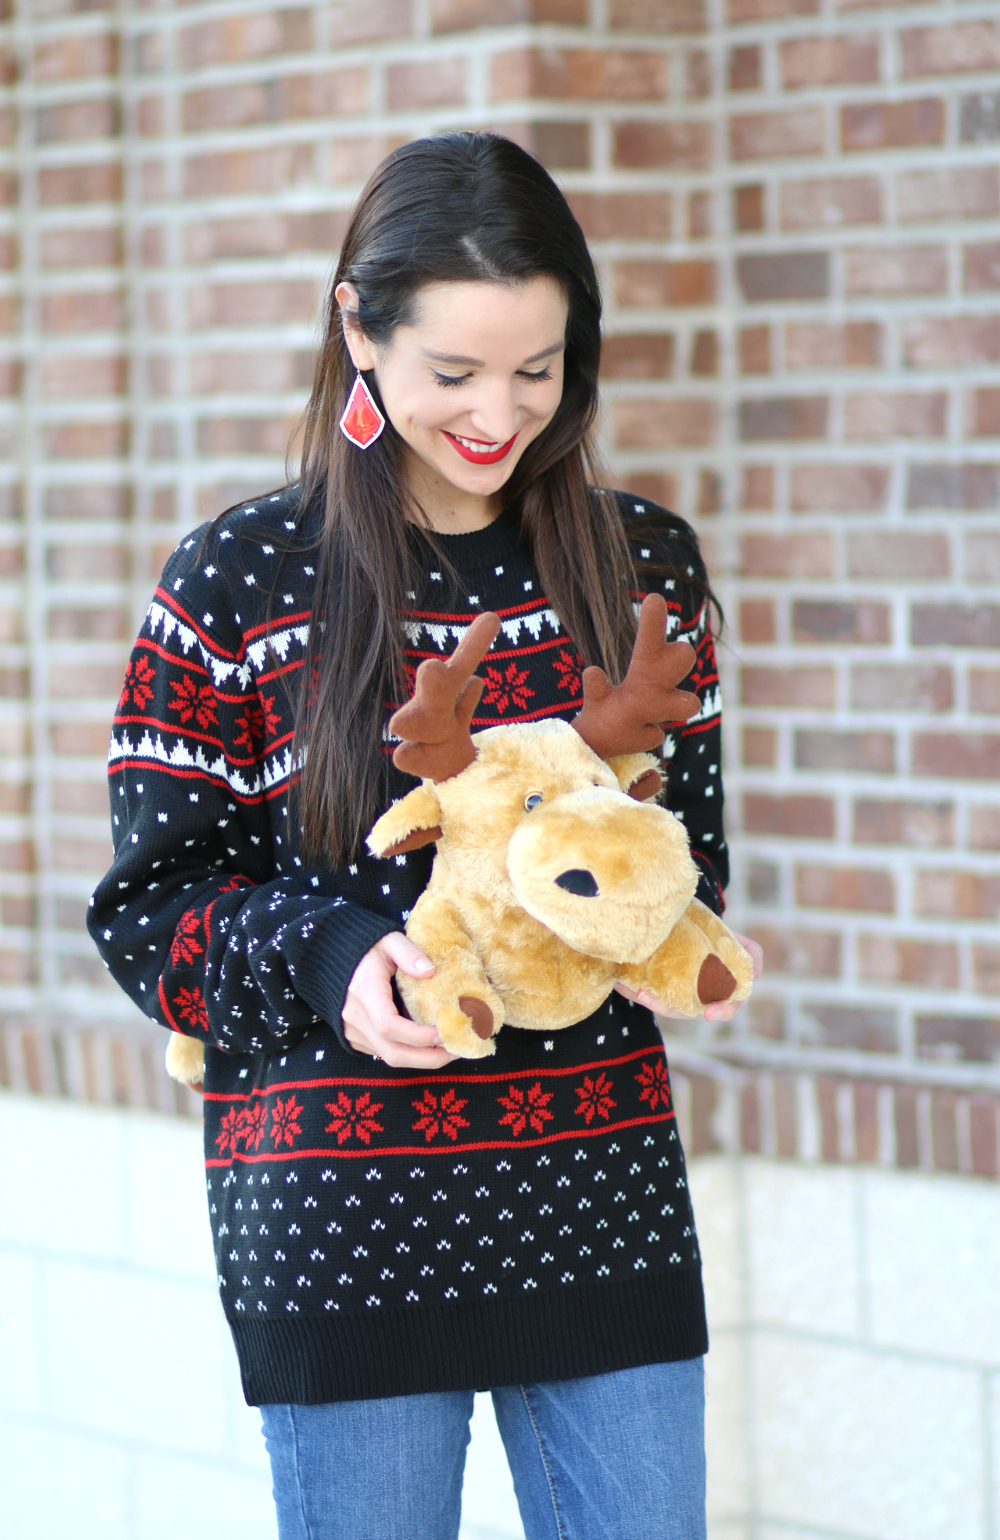 Tacky Holiday Fashion: 3D Ugly Christmas Sweater | Diary of a ...